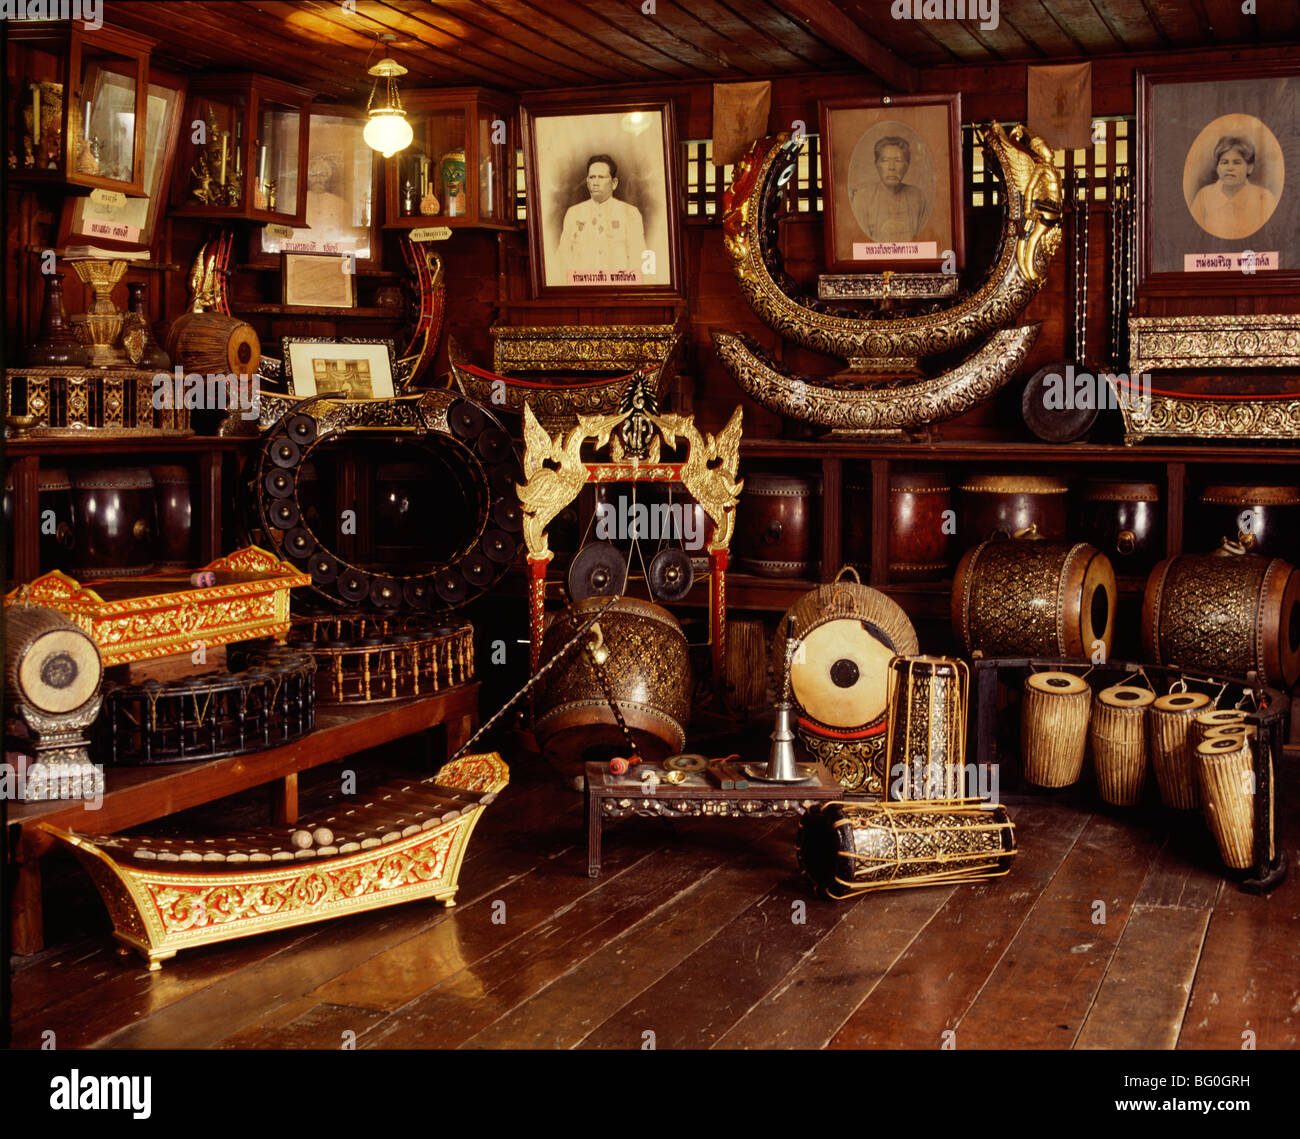 Musical instruments in Thailand, Southeast Asia, Asia - Stock Image